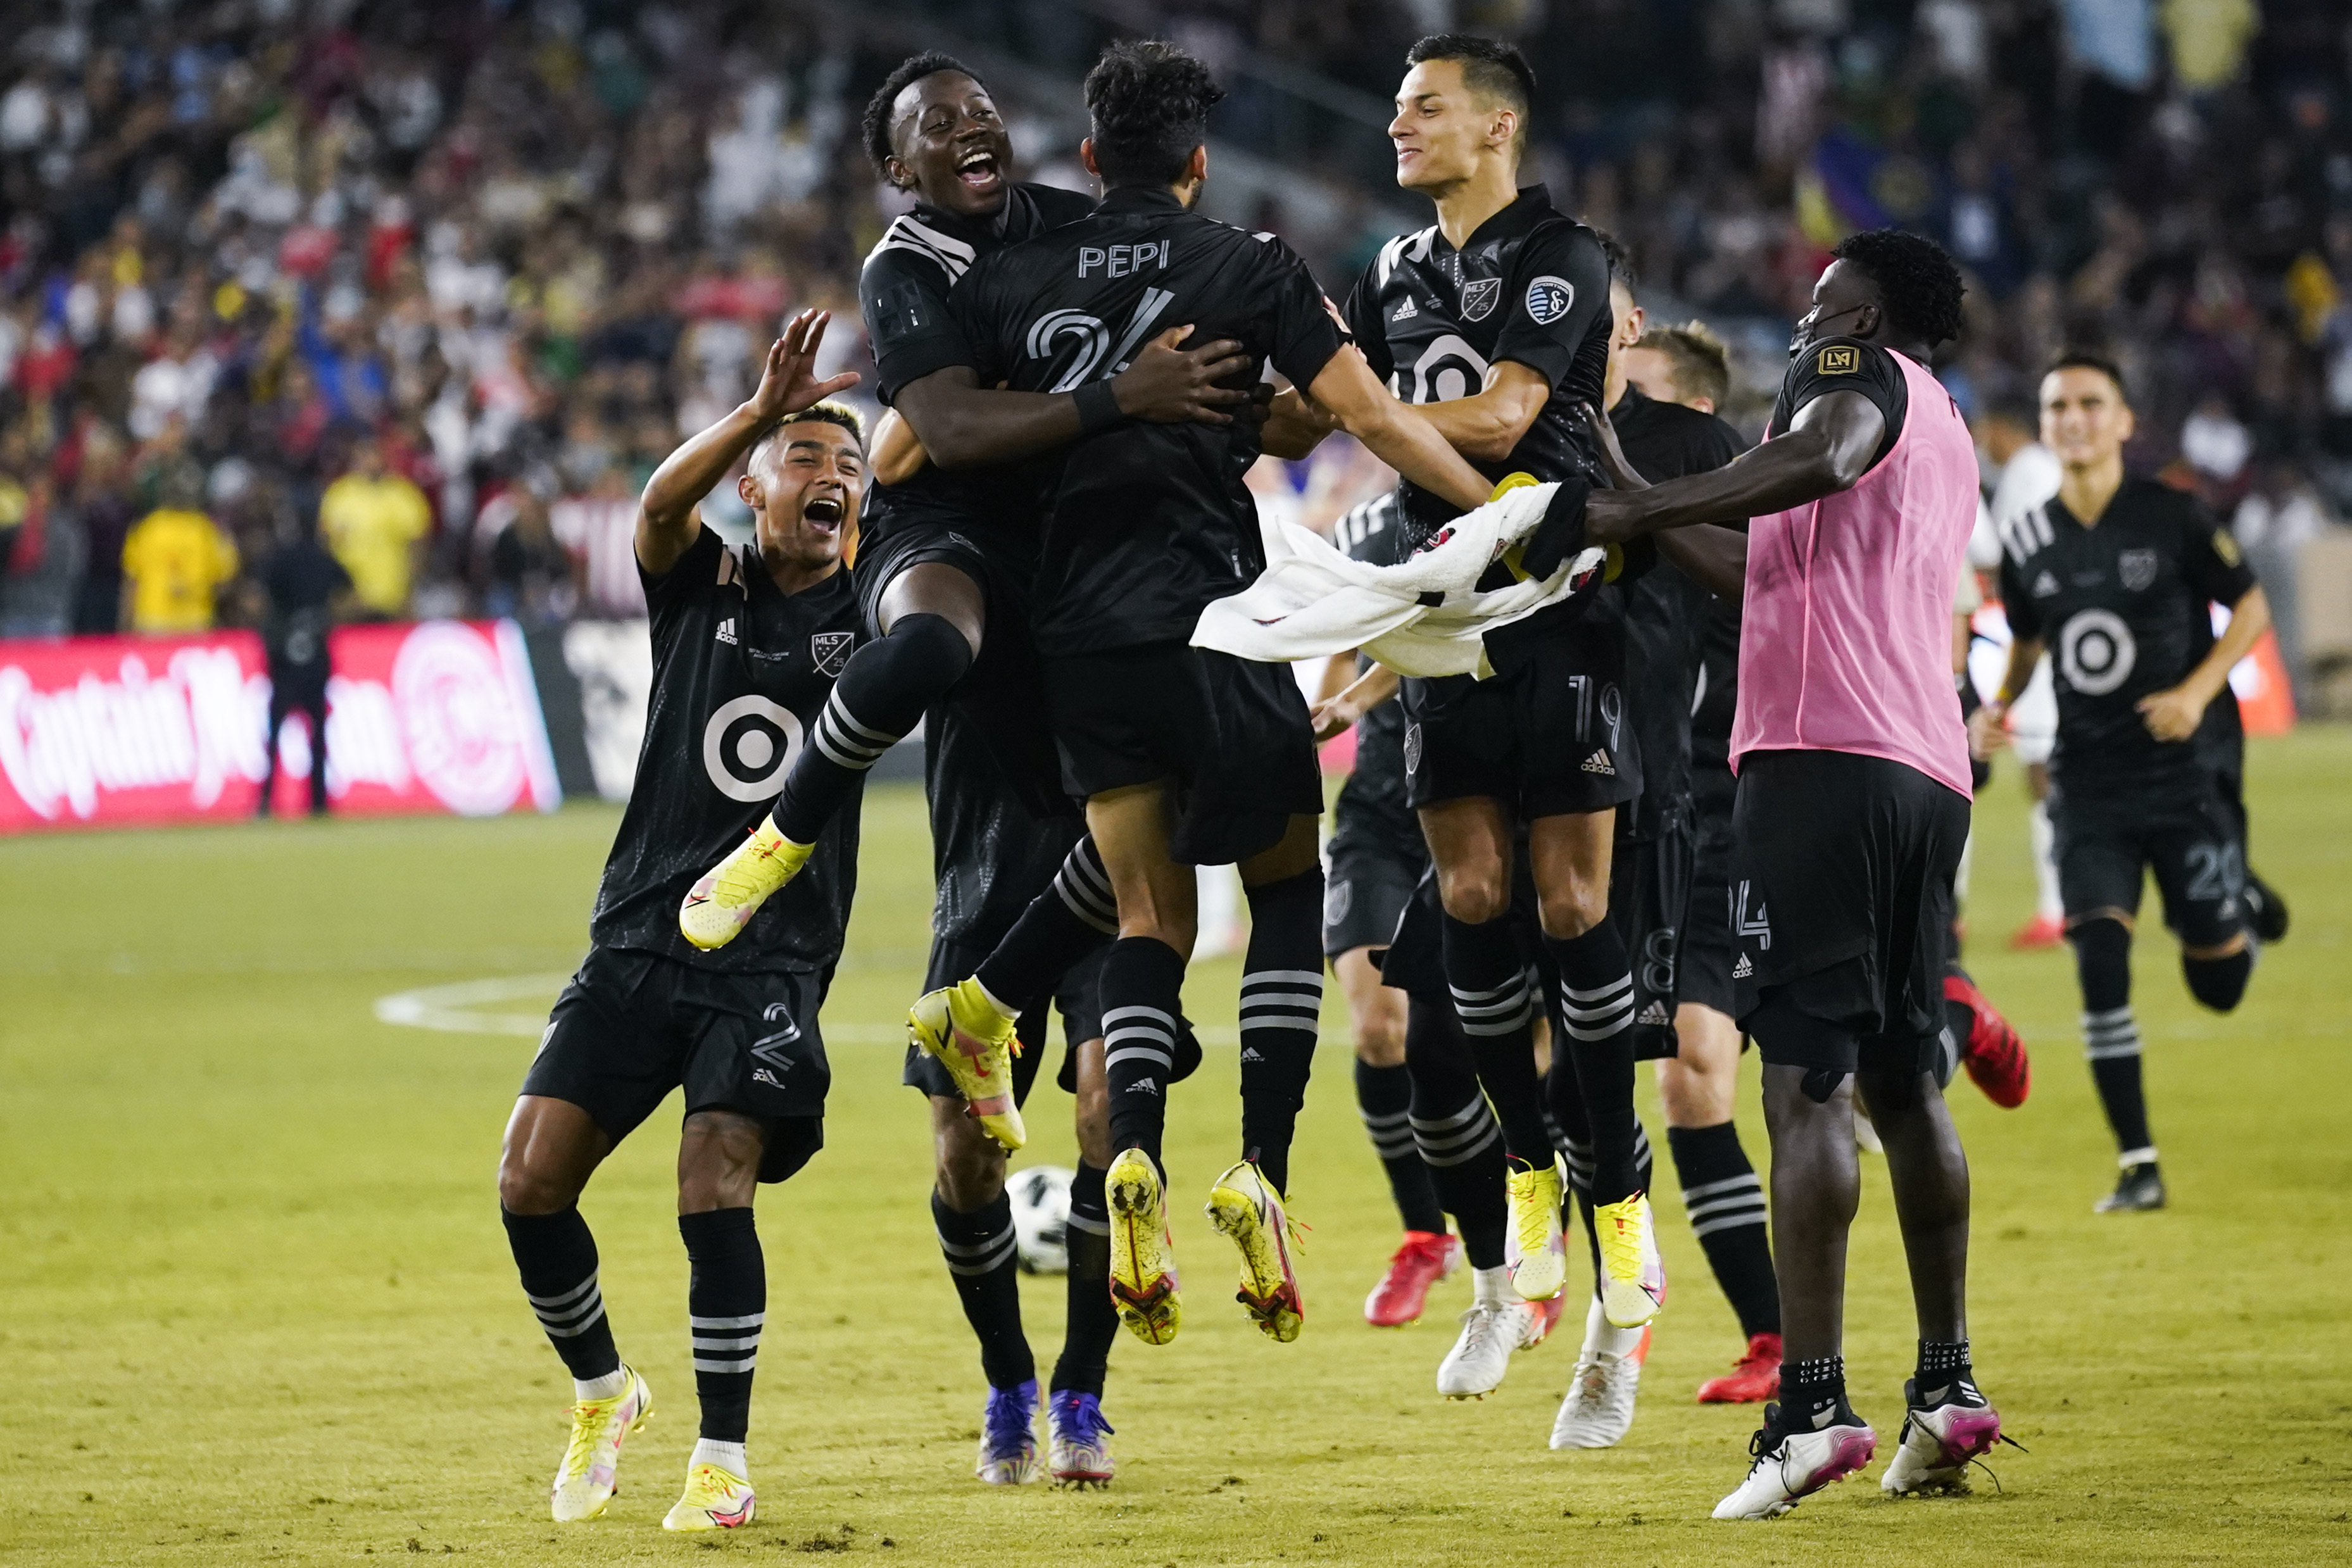 MLS All-Star players celebrate after FC Dallas forward Ricardo Pepi (24) scored the winning goal in a penalty shoot out against the Liga MX All-Stars during the MLS All-Star Game in Los Angeles.